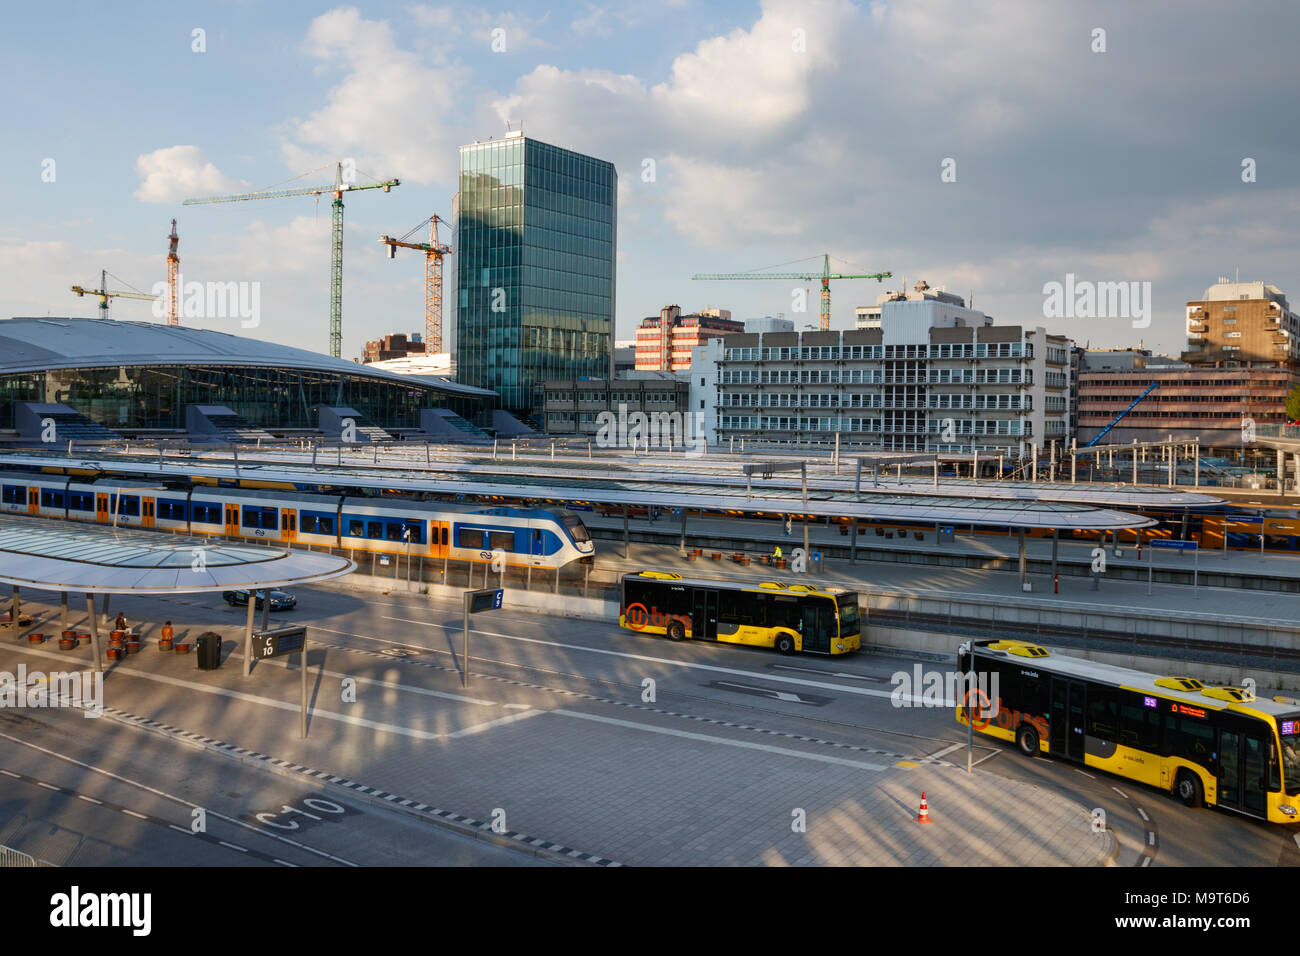 Platforms of Utrecht Centraal Railway Station with trains and the bus station with leaving buses on a sunny day. Utrecht, The Netherlands. - Stock Image